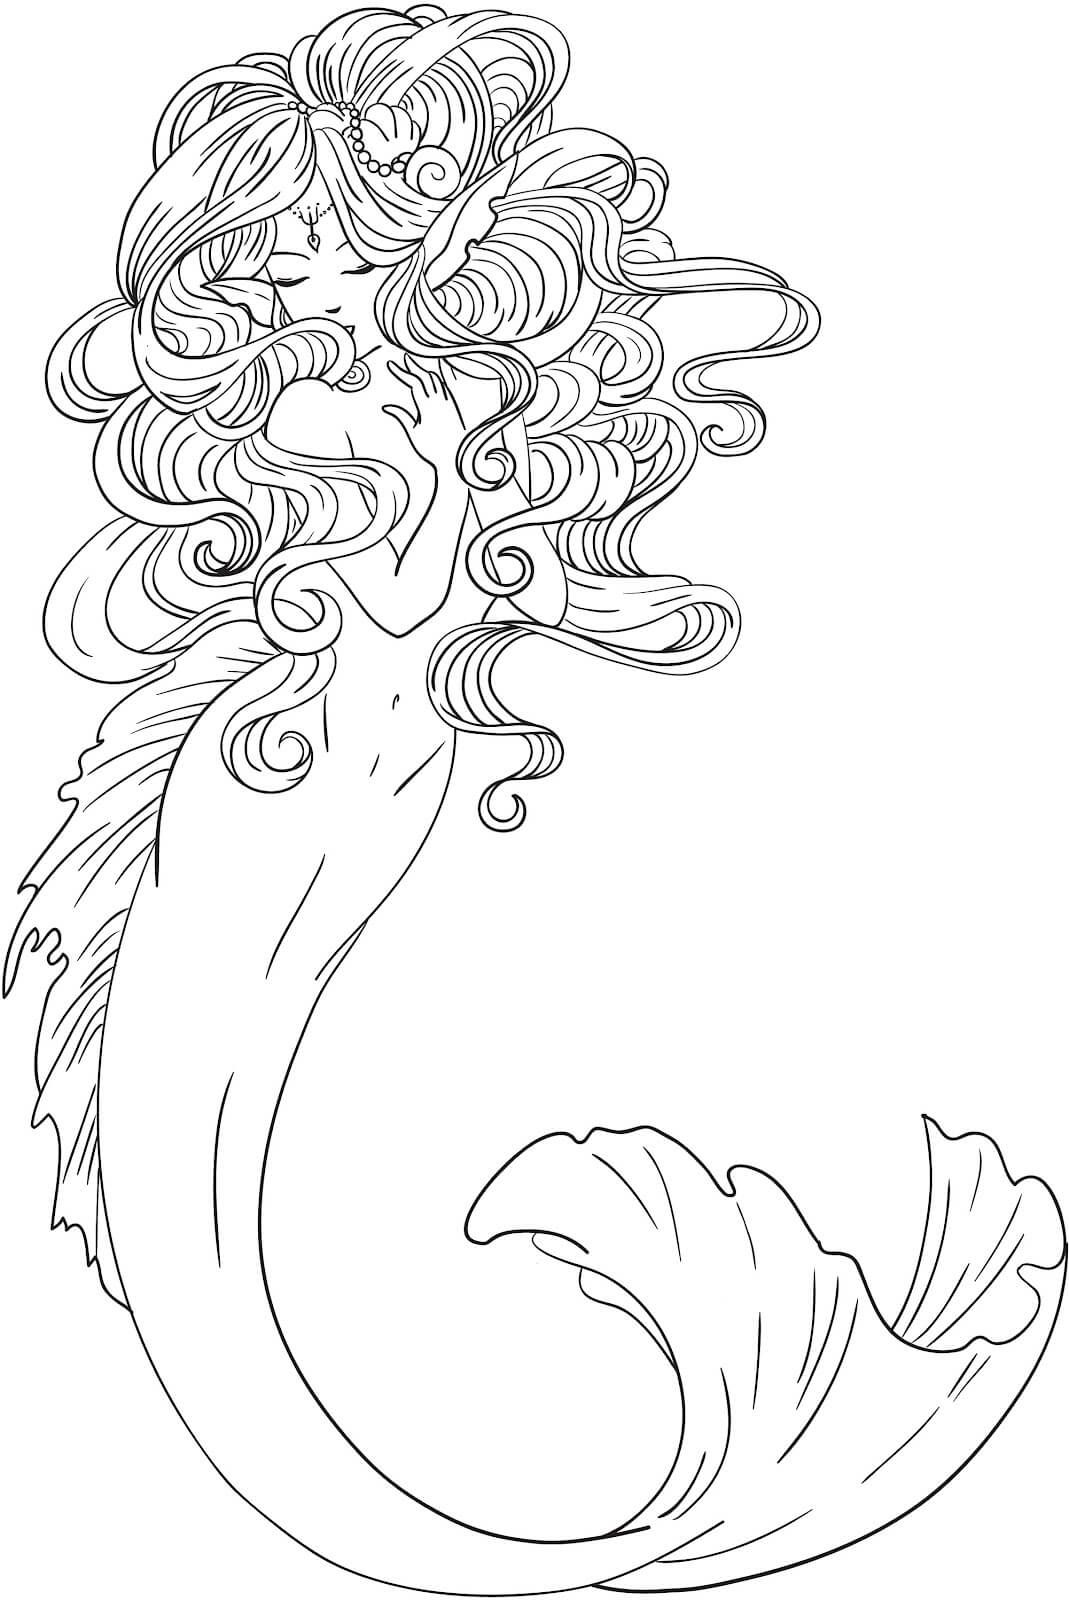 adult coloring pages mermaids free coloring page coloring pages - Mermaid Coloring Pages For Adults